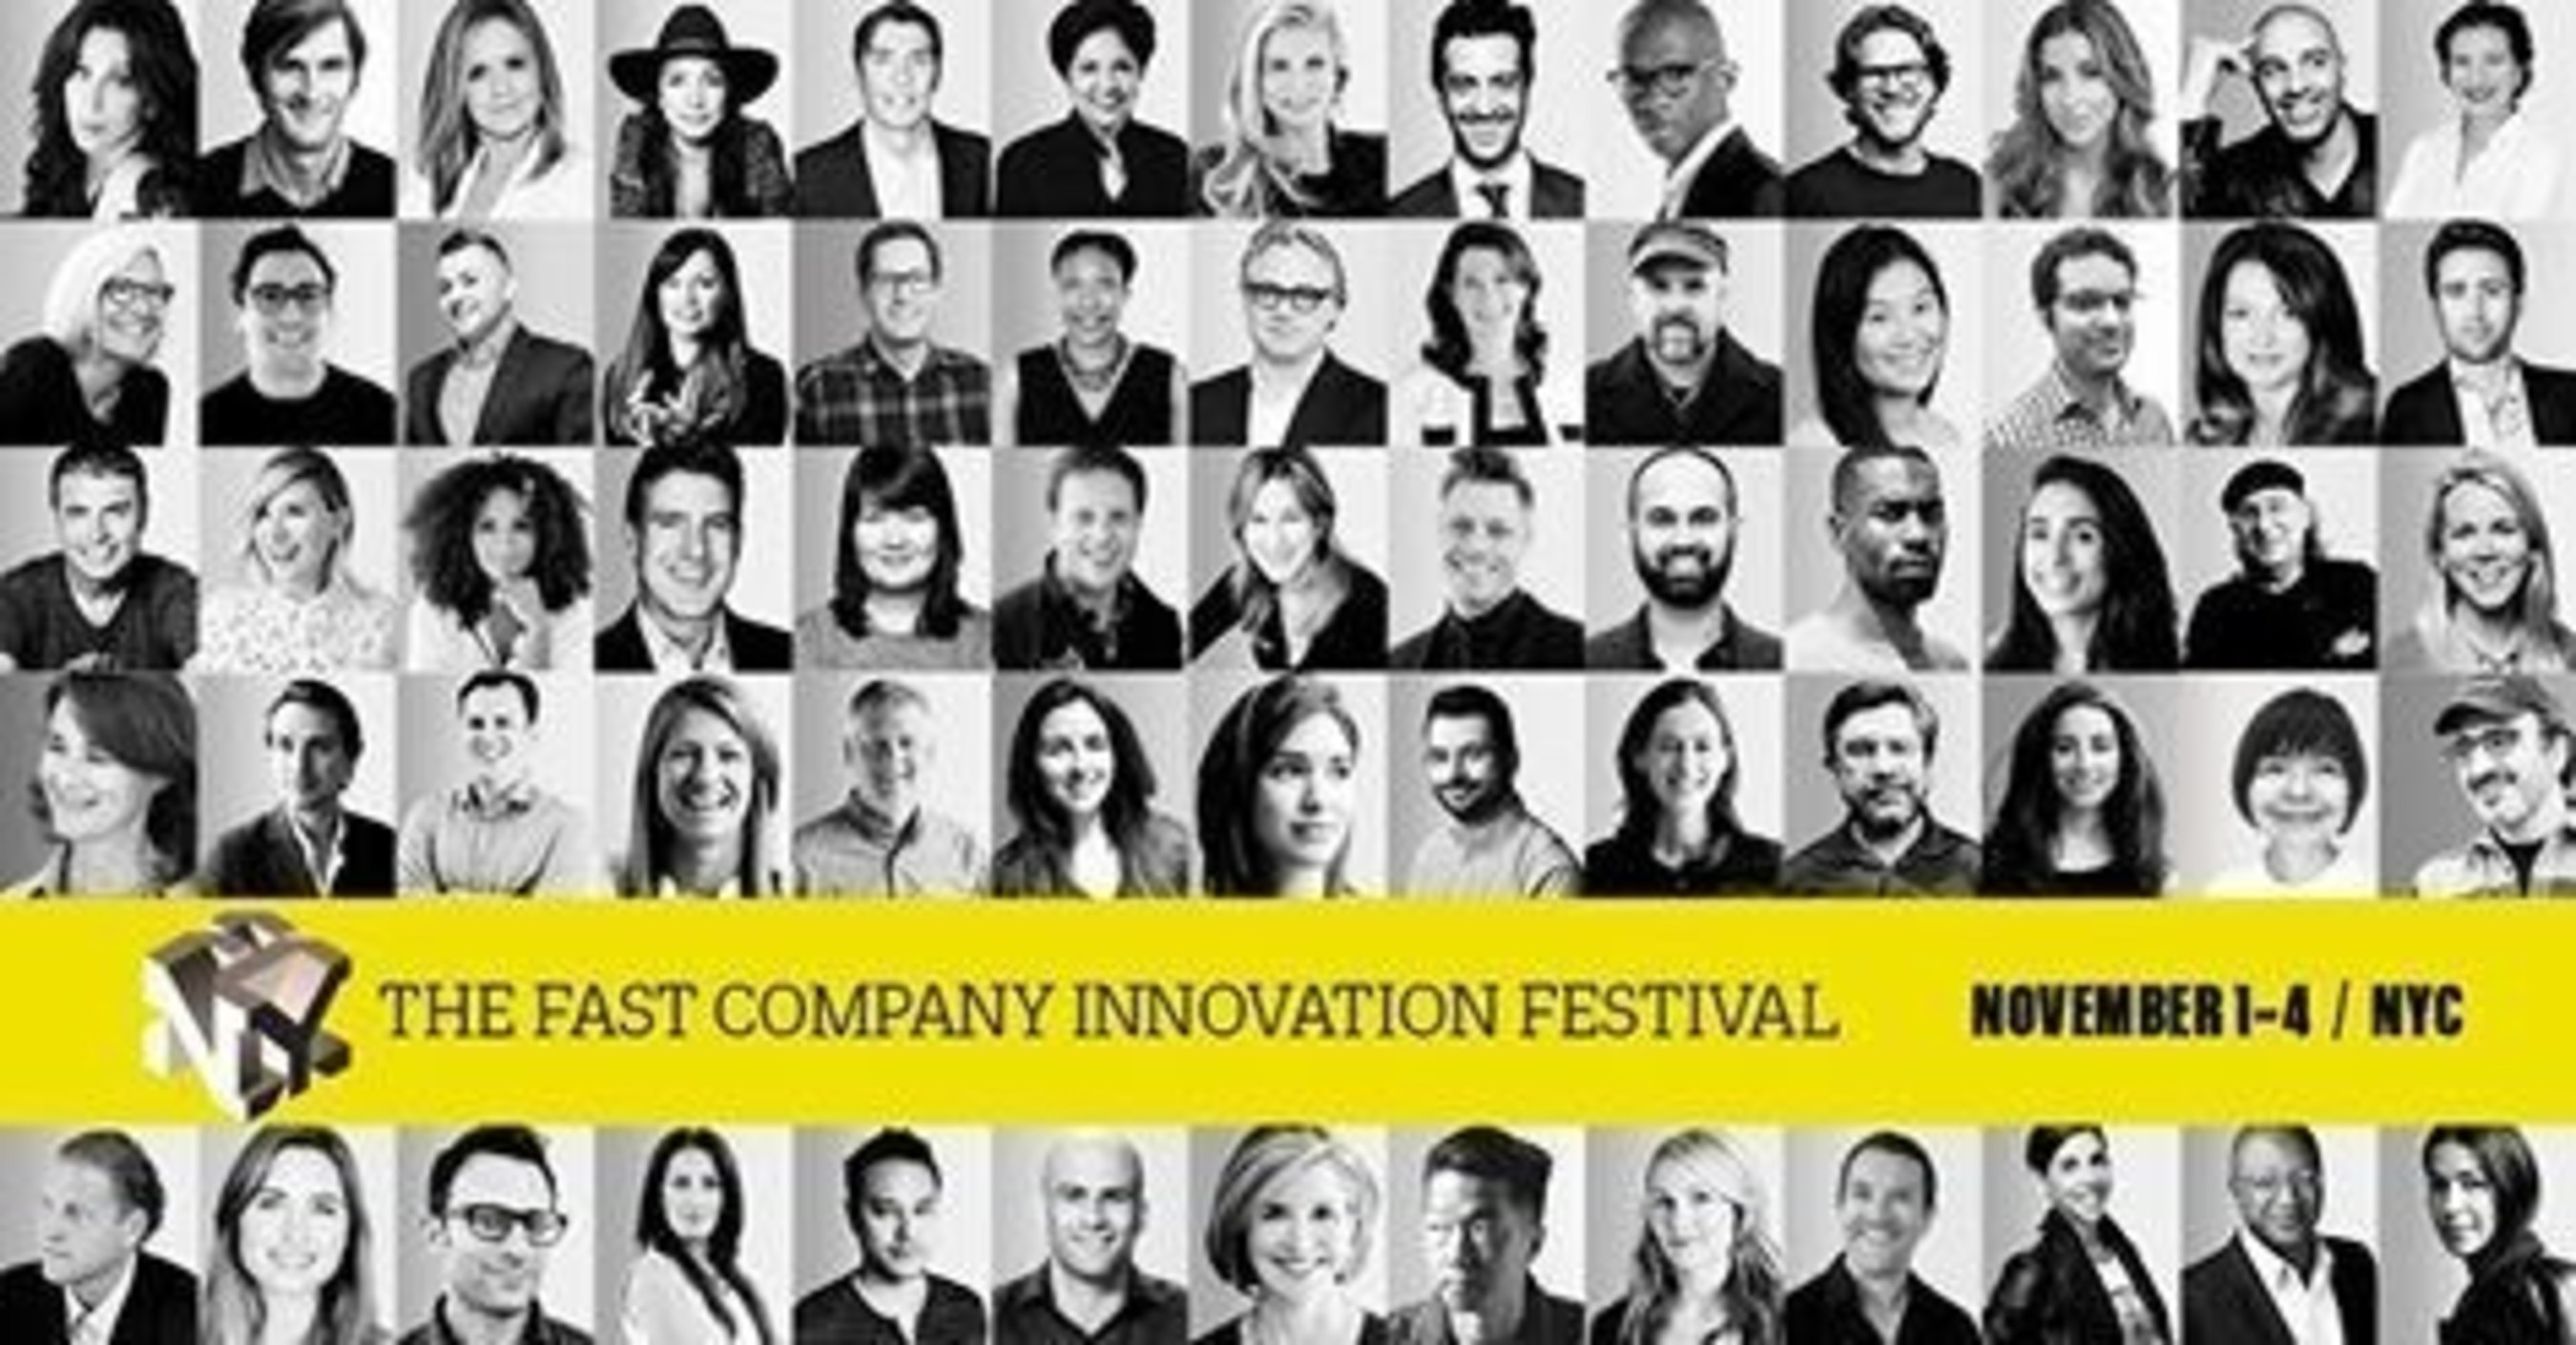 Fast Company Announces The Second Annual Fast Company Innovation Festival